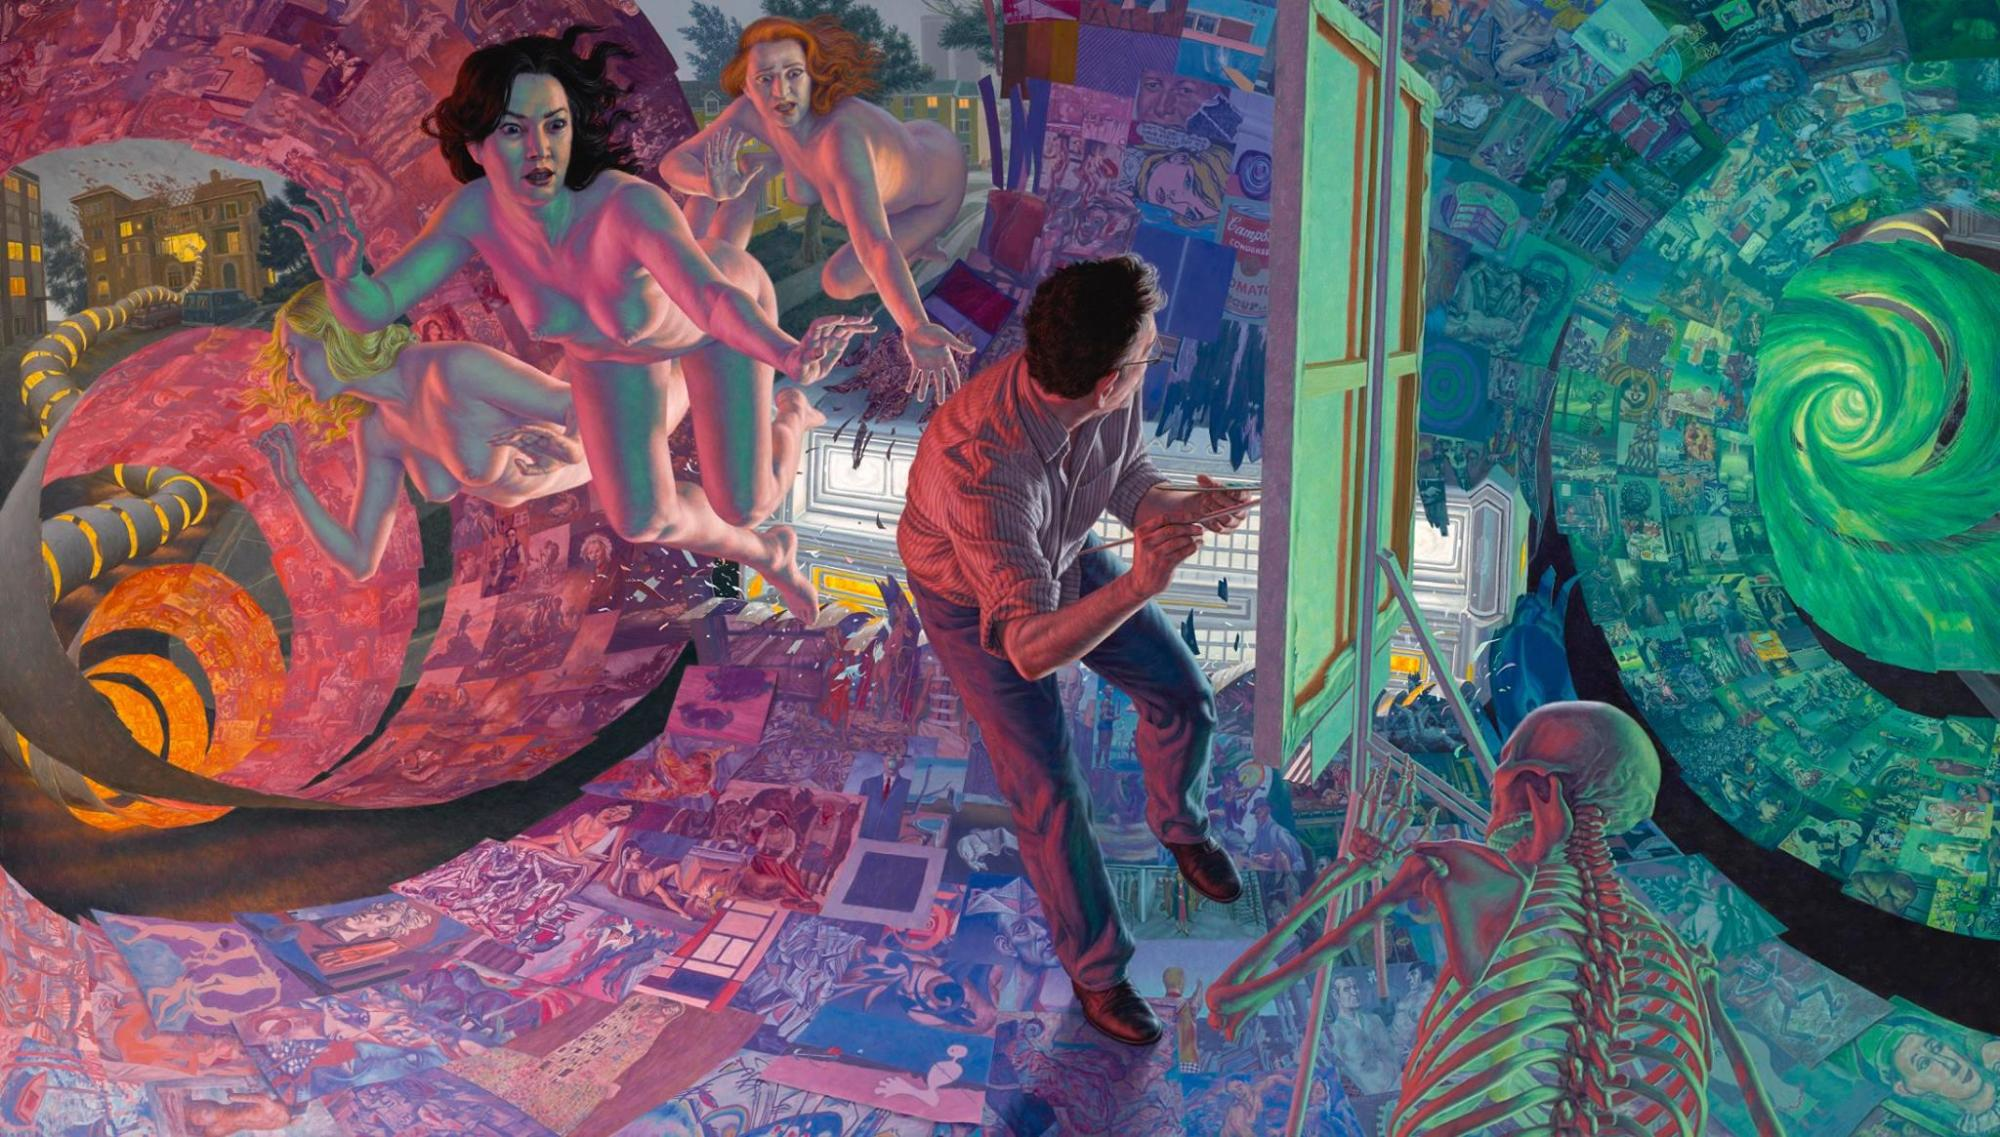 Dream of Art History by F. Scott Hess